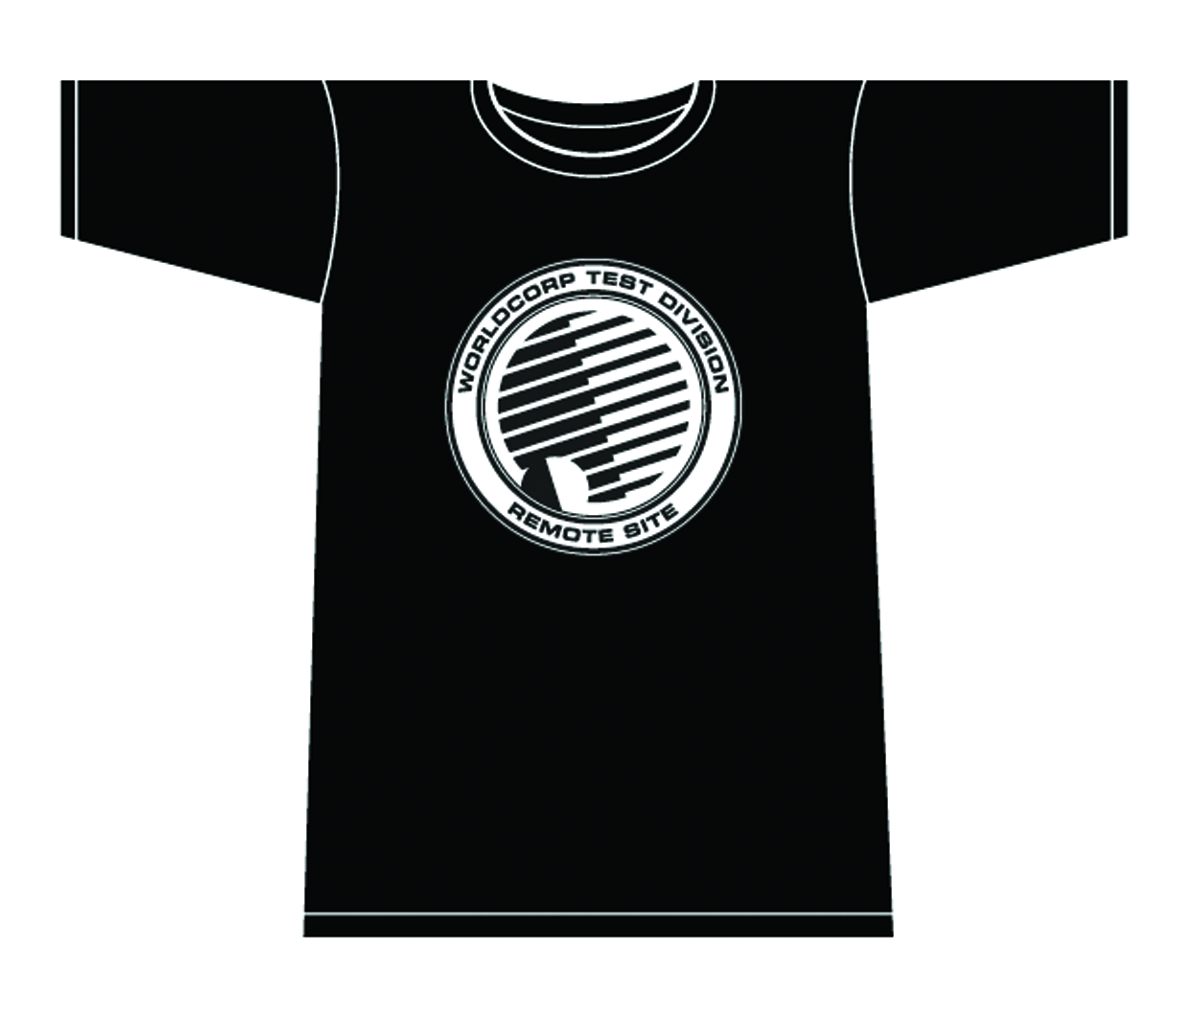 NOWHERE MEN WORLD CORP TEST DIVISION T/S BLK MENS SM